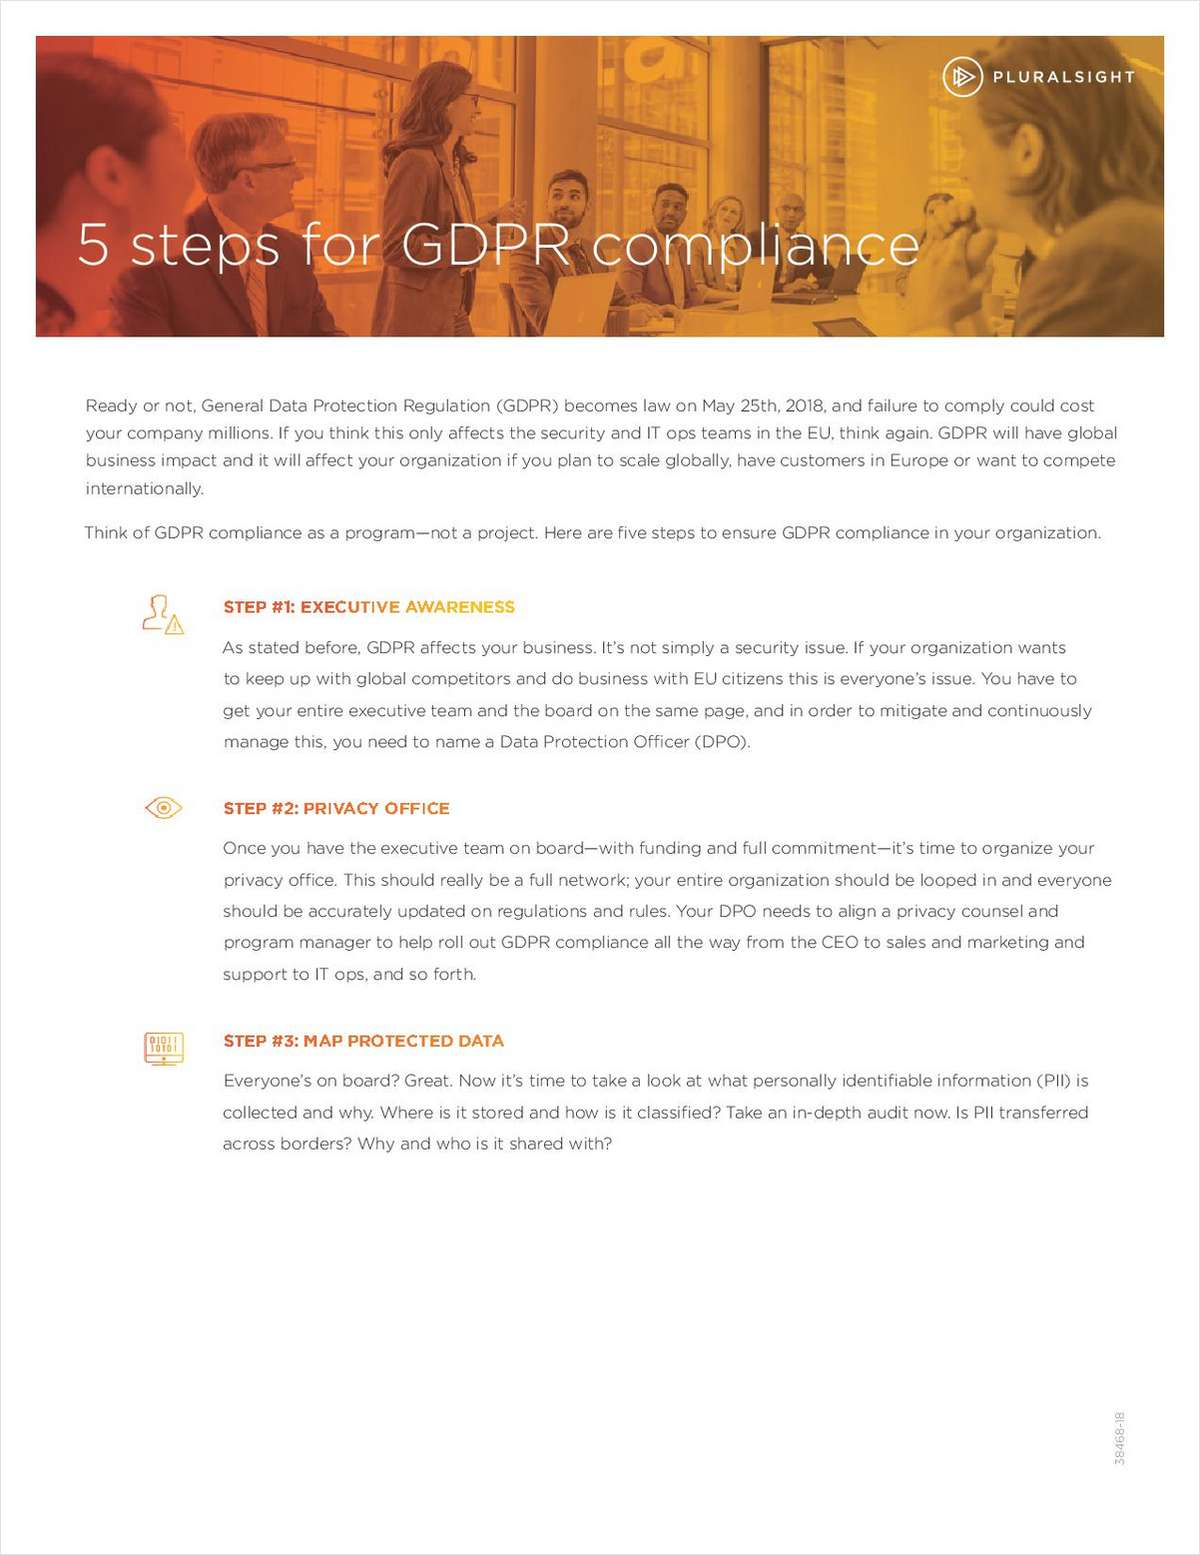 5 Steps for GDPR Compliance